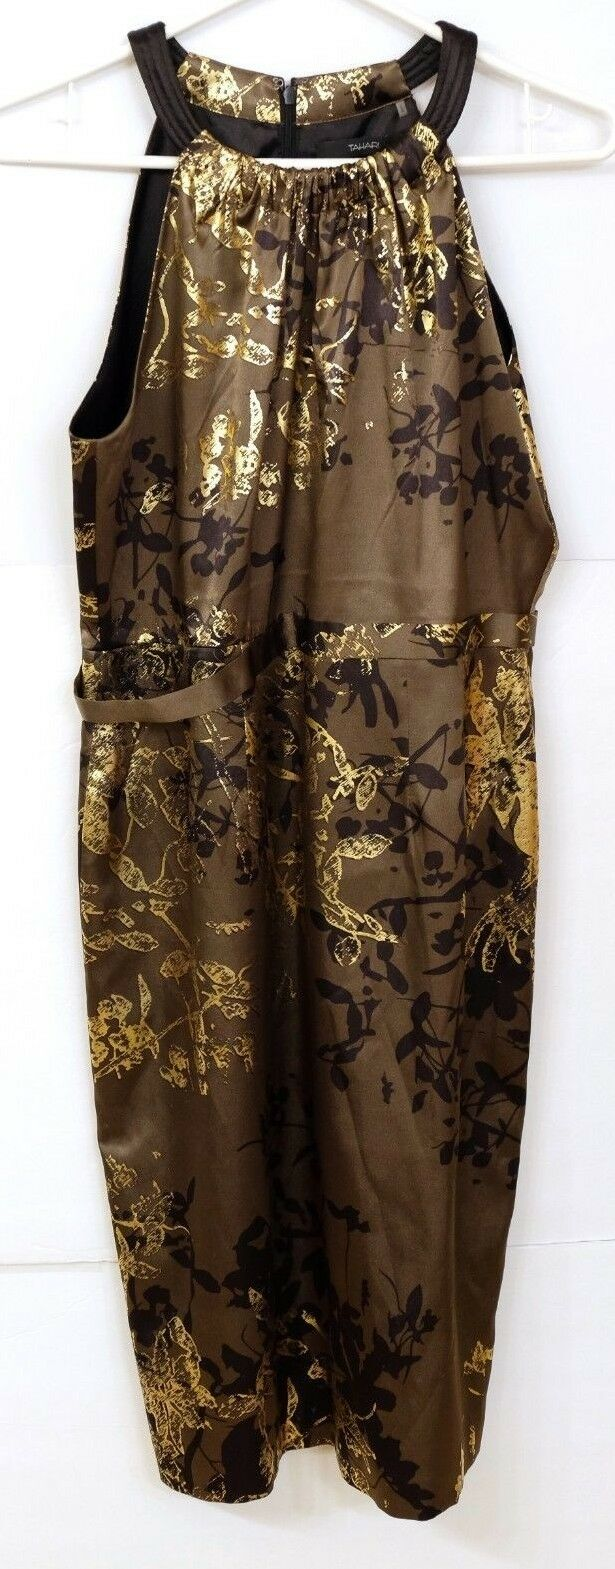 NWT Tahari Women's Size 8 Caramel gold Pearl Sleeveless Belted A-Line Dress MS